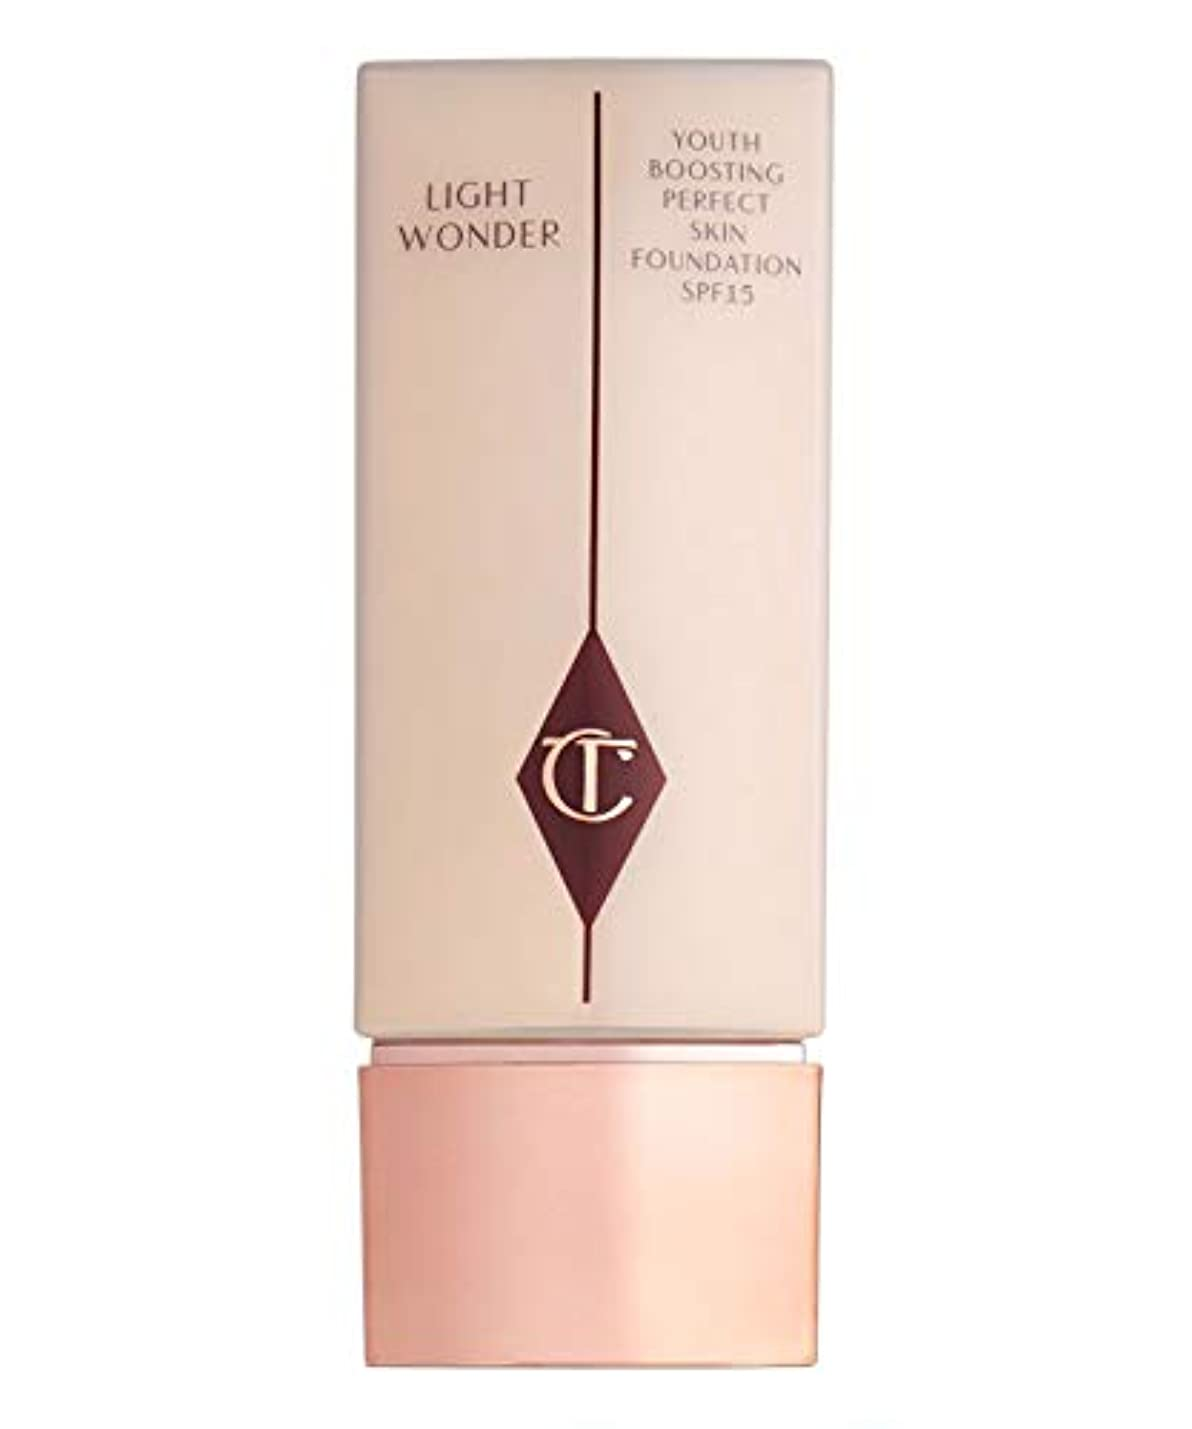 作るシェフ打ち上げるCHARLOTTE TILBURY Light Wonder foundation SPF 15 , Fair 01 by CHARLOTTE TILBURY